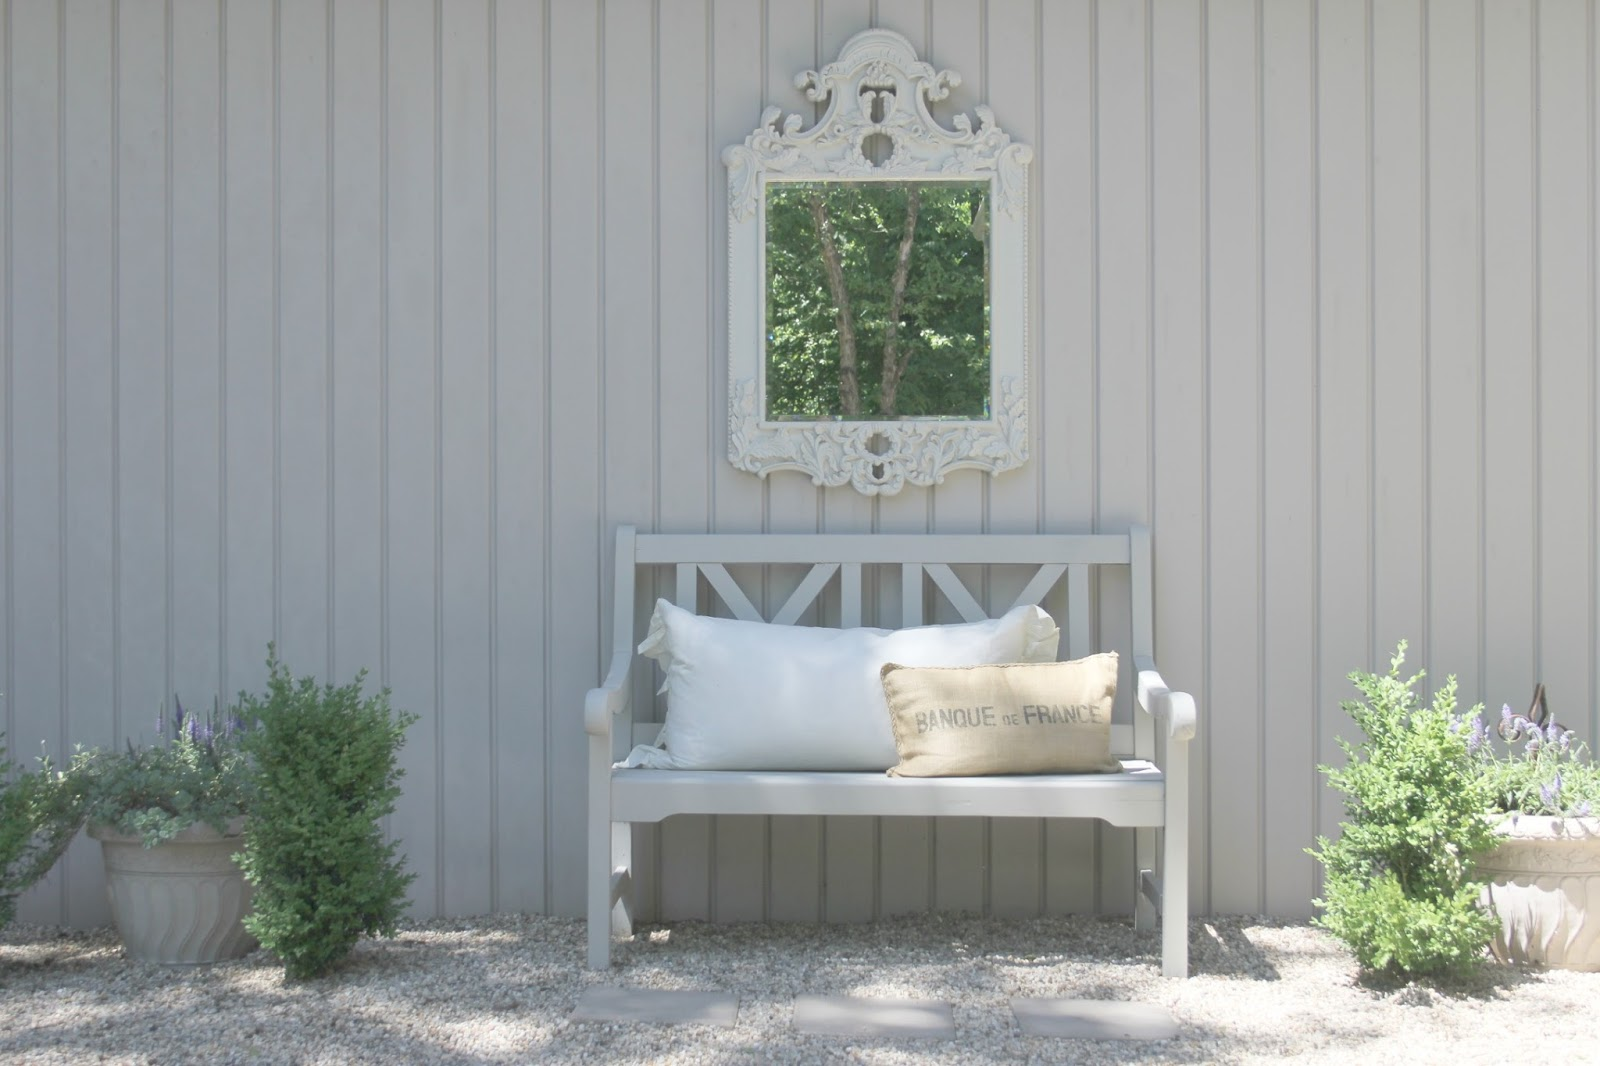 European farmhouse style and French Nordic cottage decor in our fixer upper - Hello Lovely Studio. Come see the renovation photos in Before & After: European Country Style Fixer Upper.